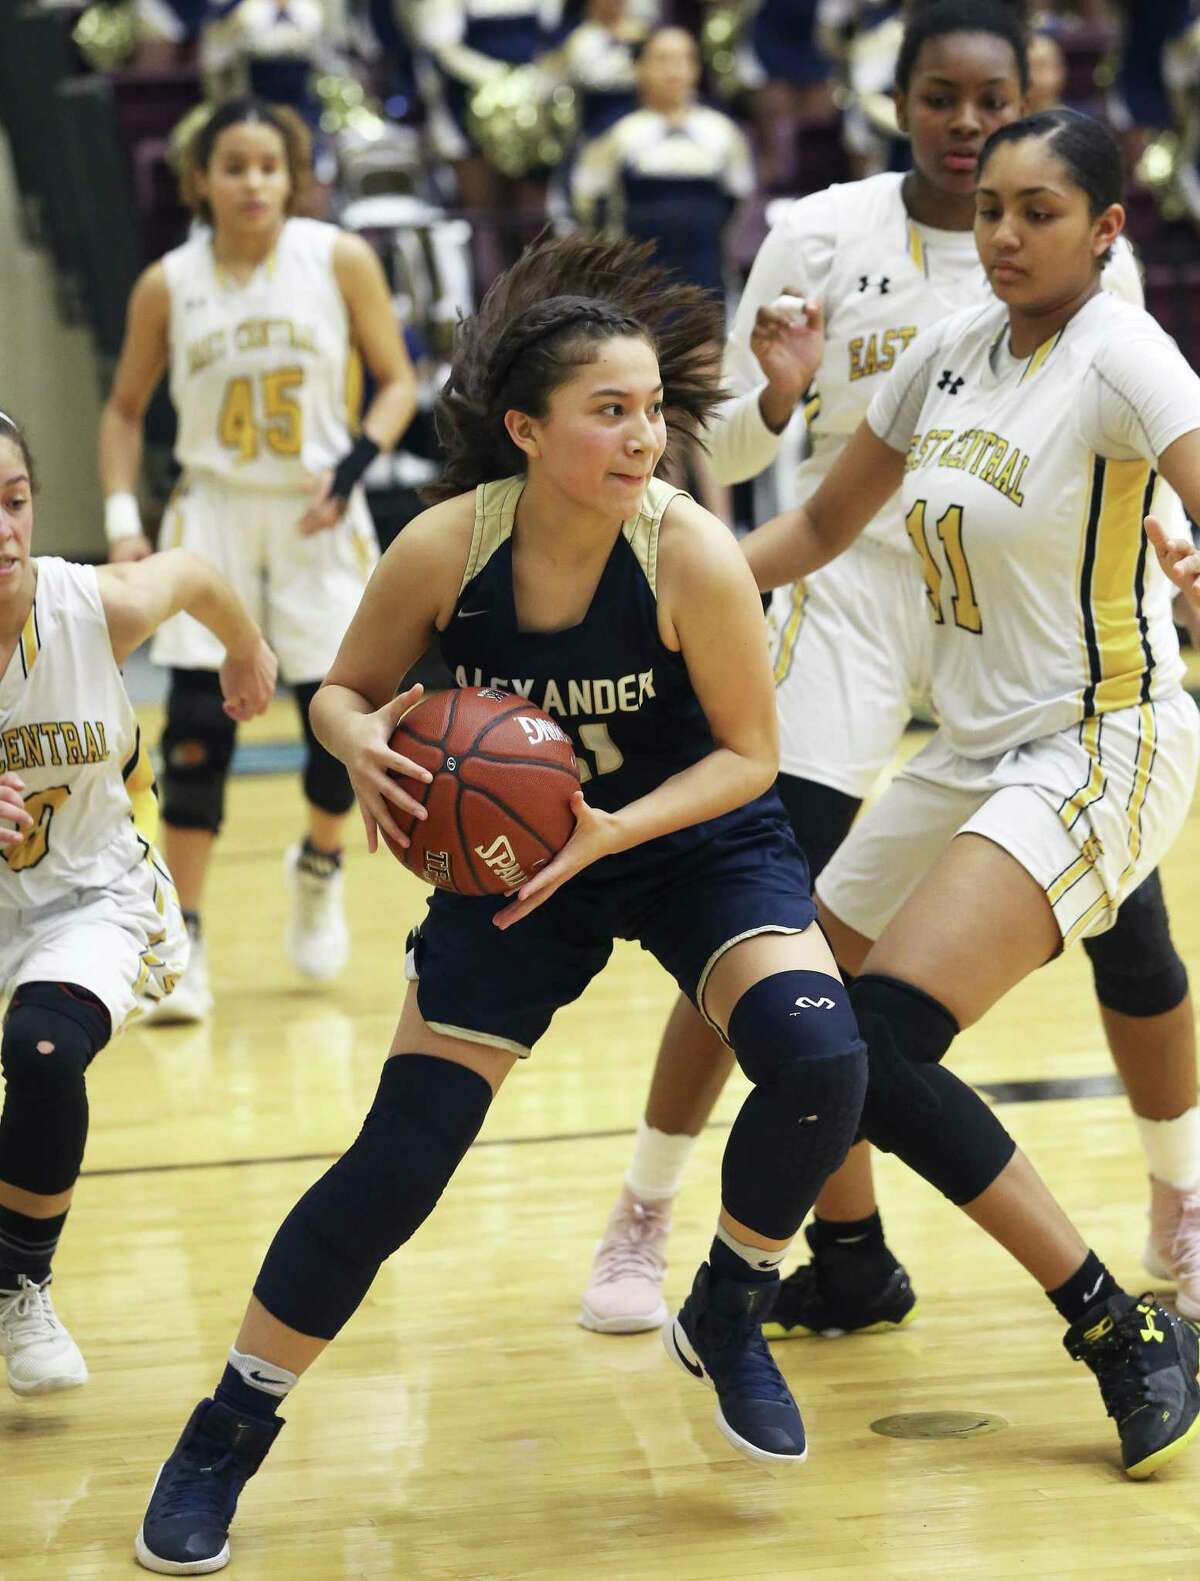 Sheyla Cardenas had a team-best 18 points as Alexander defeated Moody 66-36 Thursday night at the CC Mira's Riviera Tournament. The Lady Bulldogs swept the day also knocking off SA John Jay 44-36.